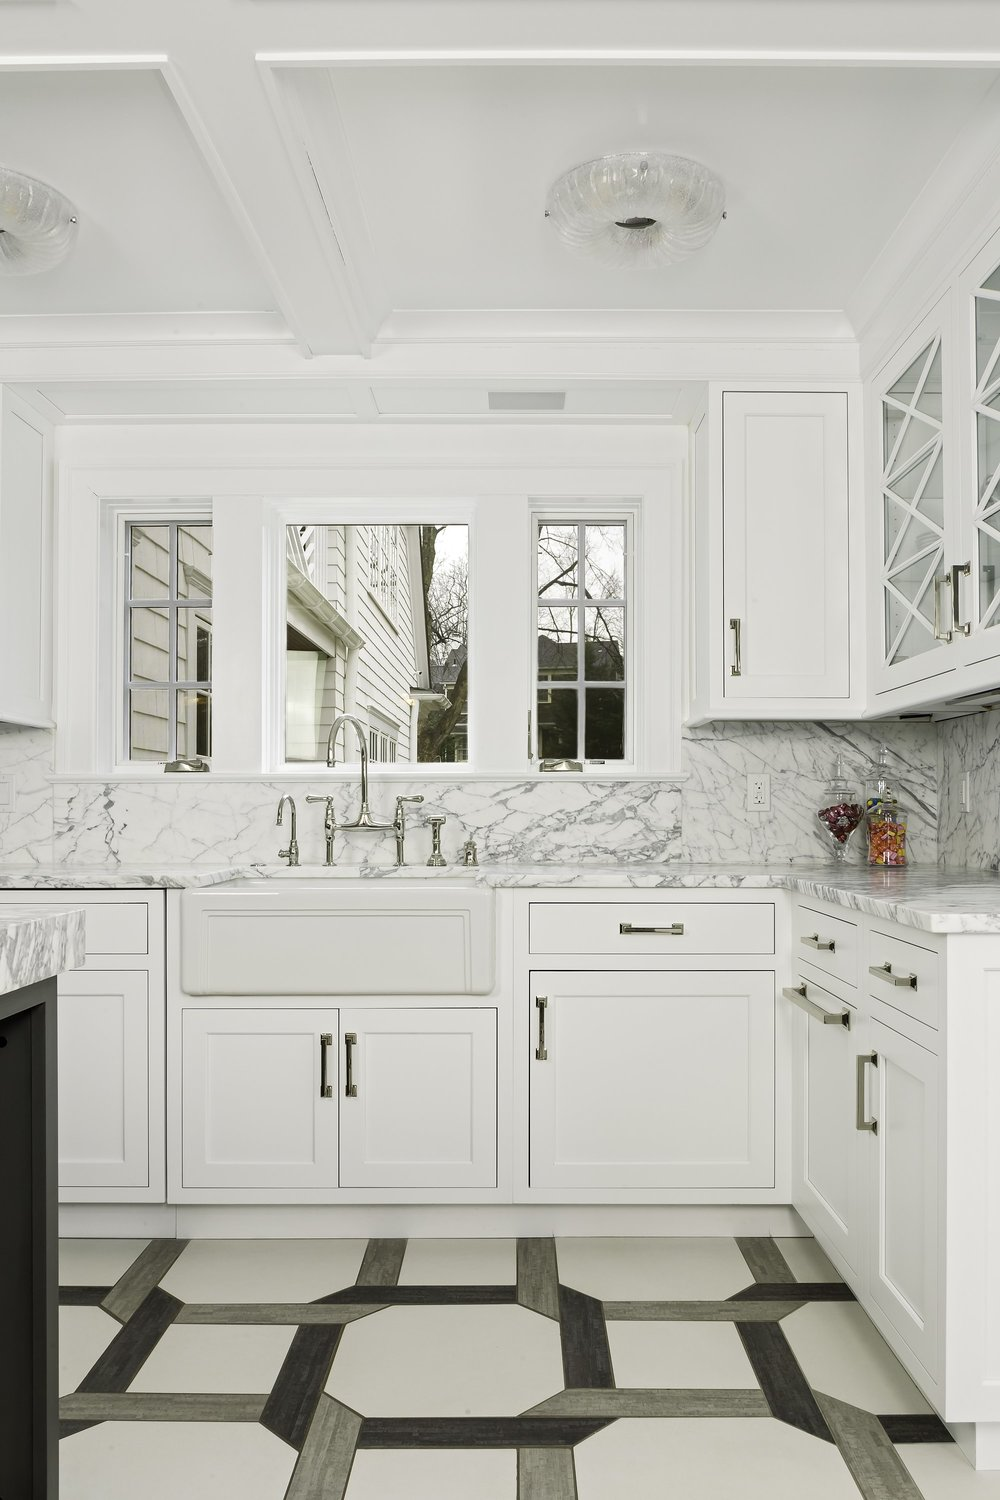 Transitional style kitchen with stylish drawers and cabinets